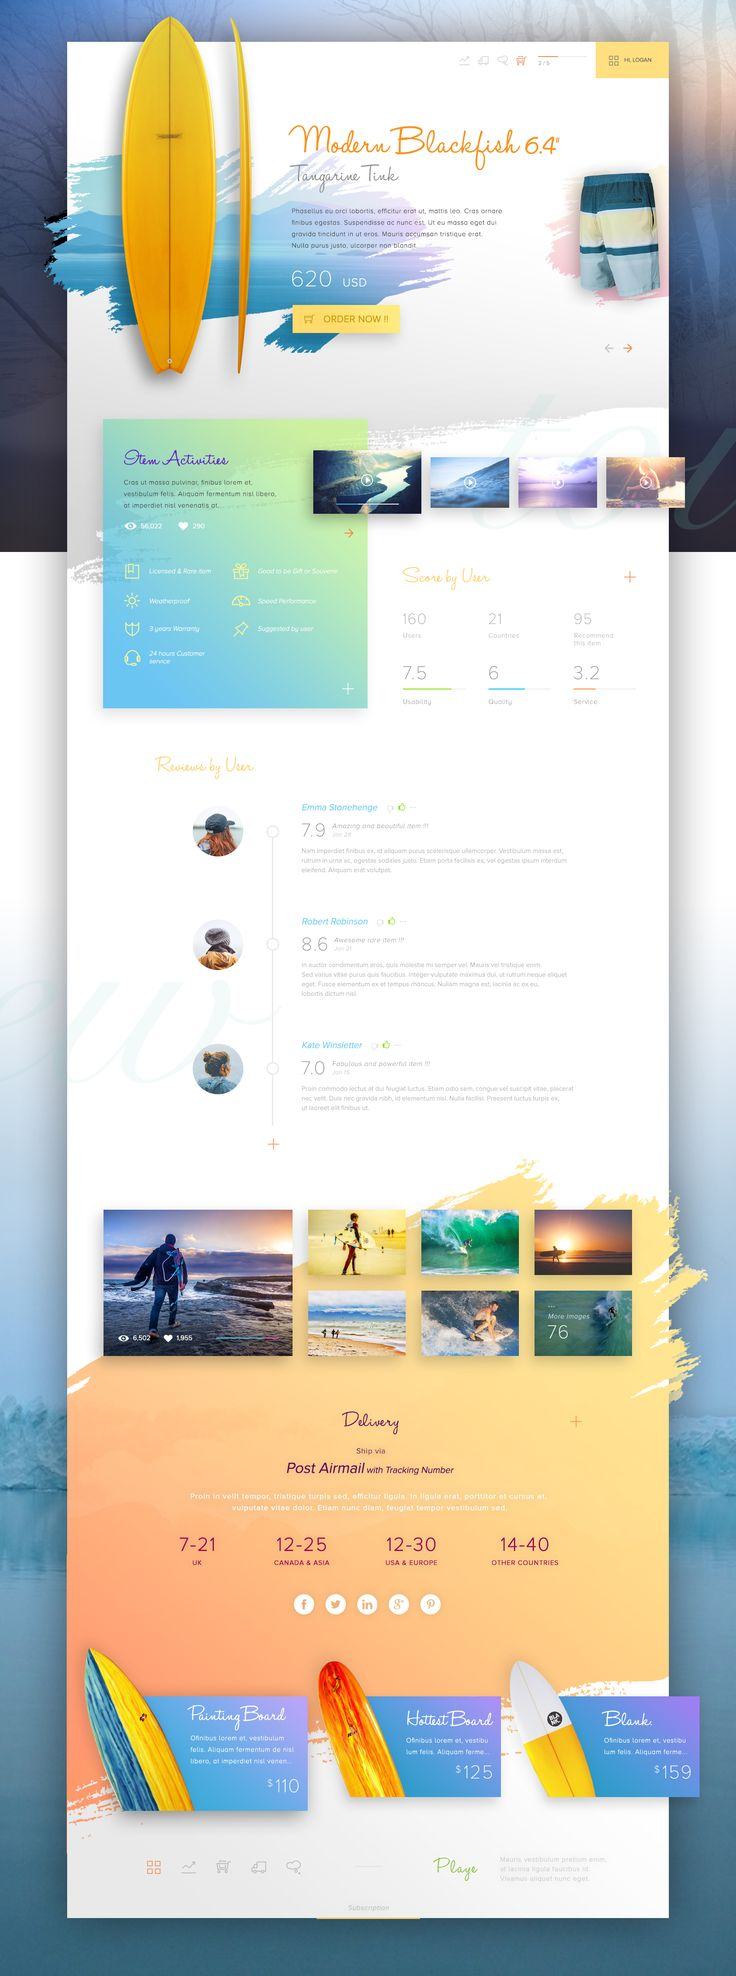 best images about ui design on pinterest design minimalism and